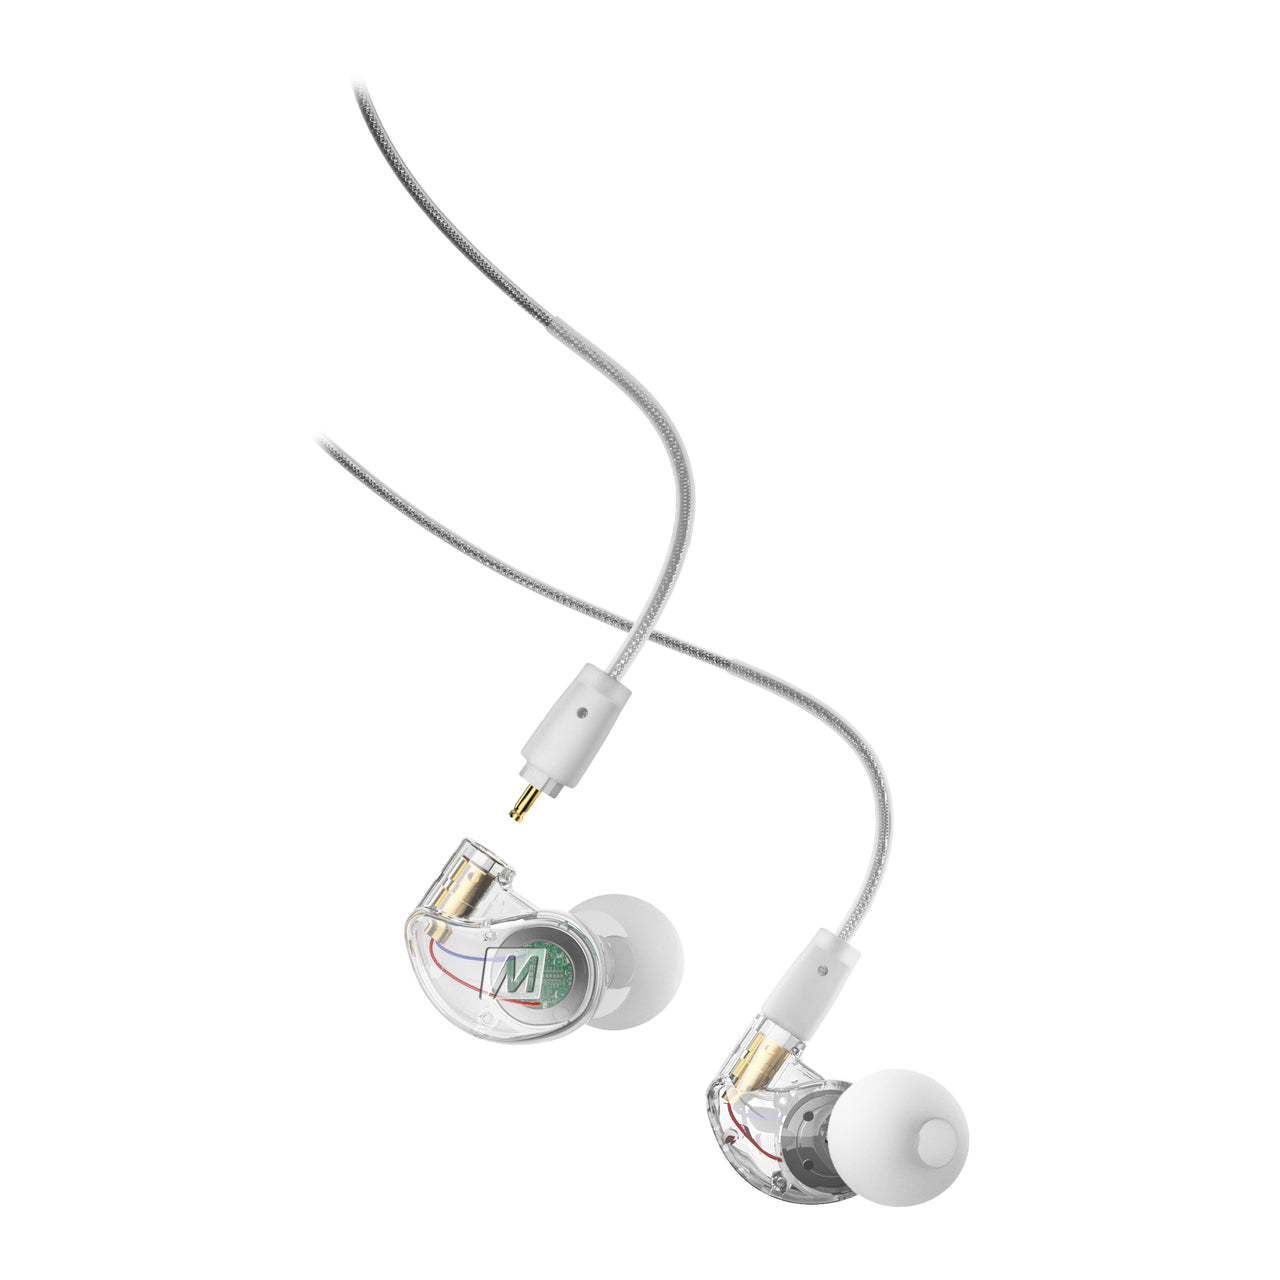 Mee Audio M6 Pro (2nd Gen) - Jaben - The Little Headphone Store